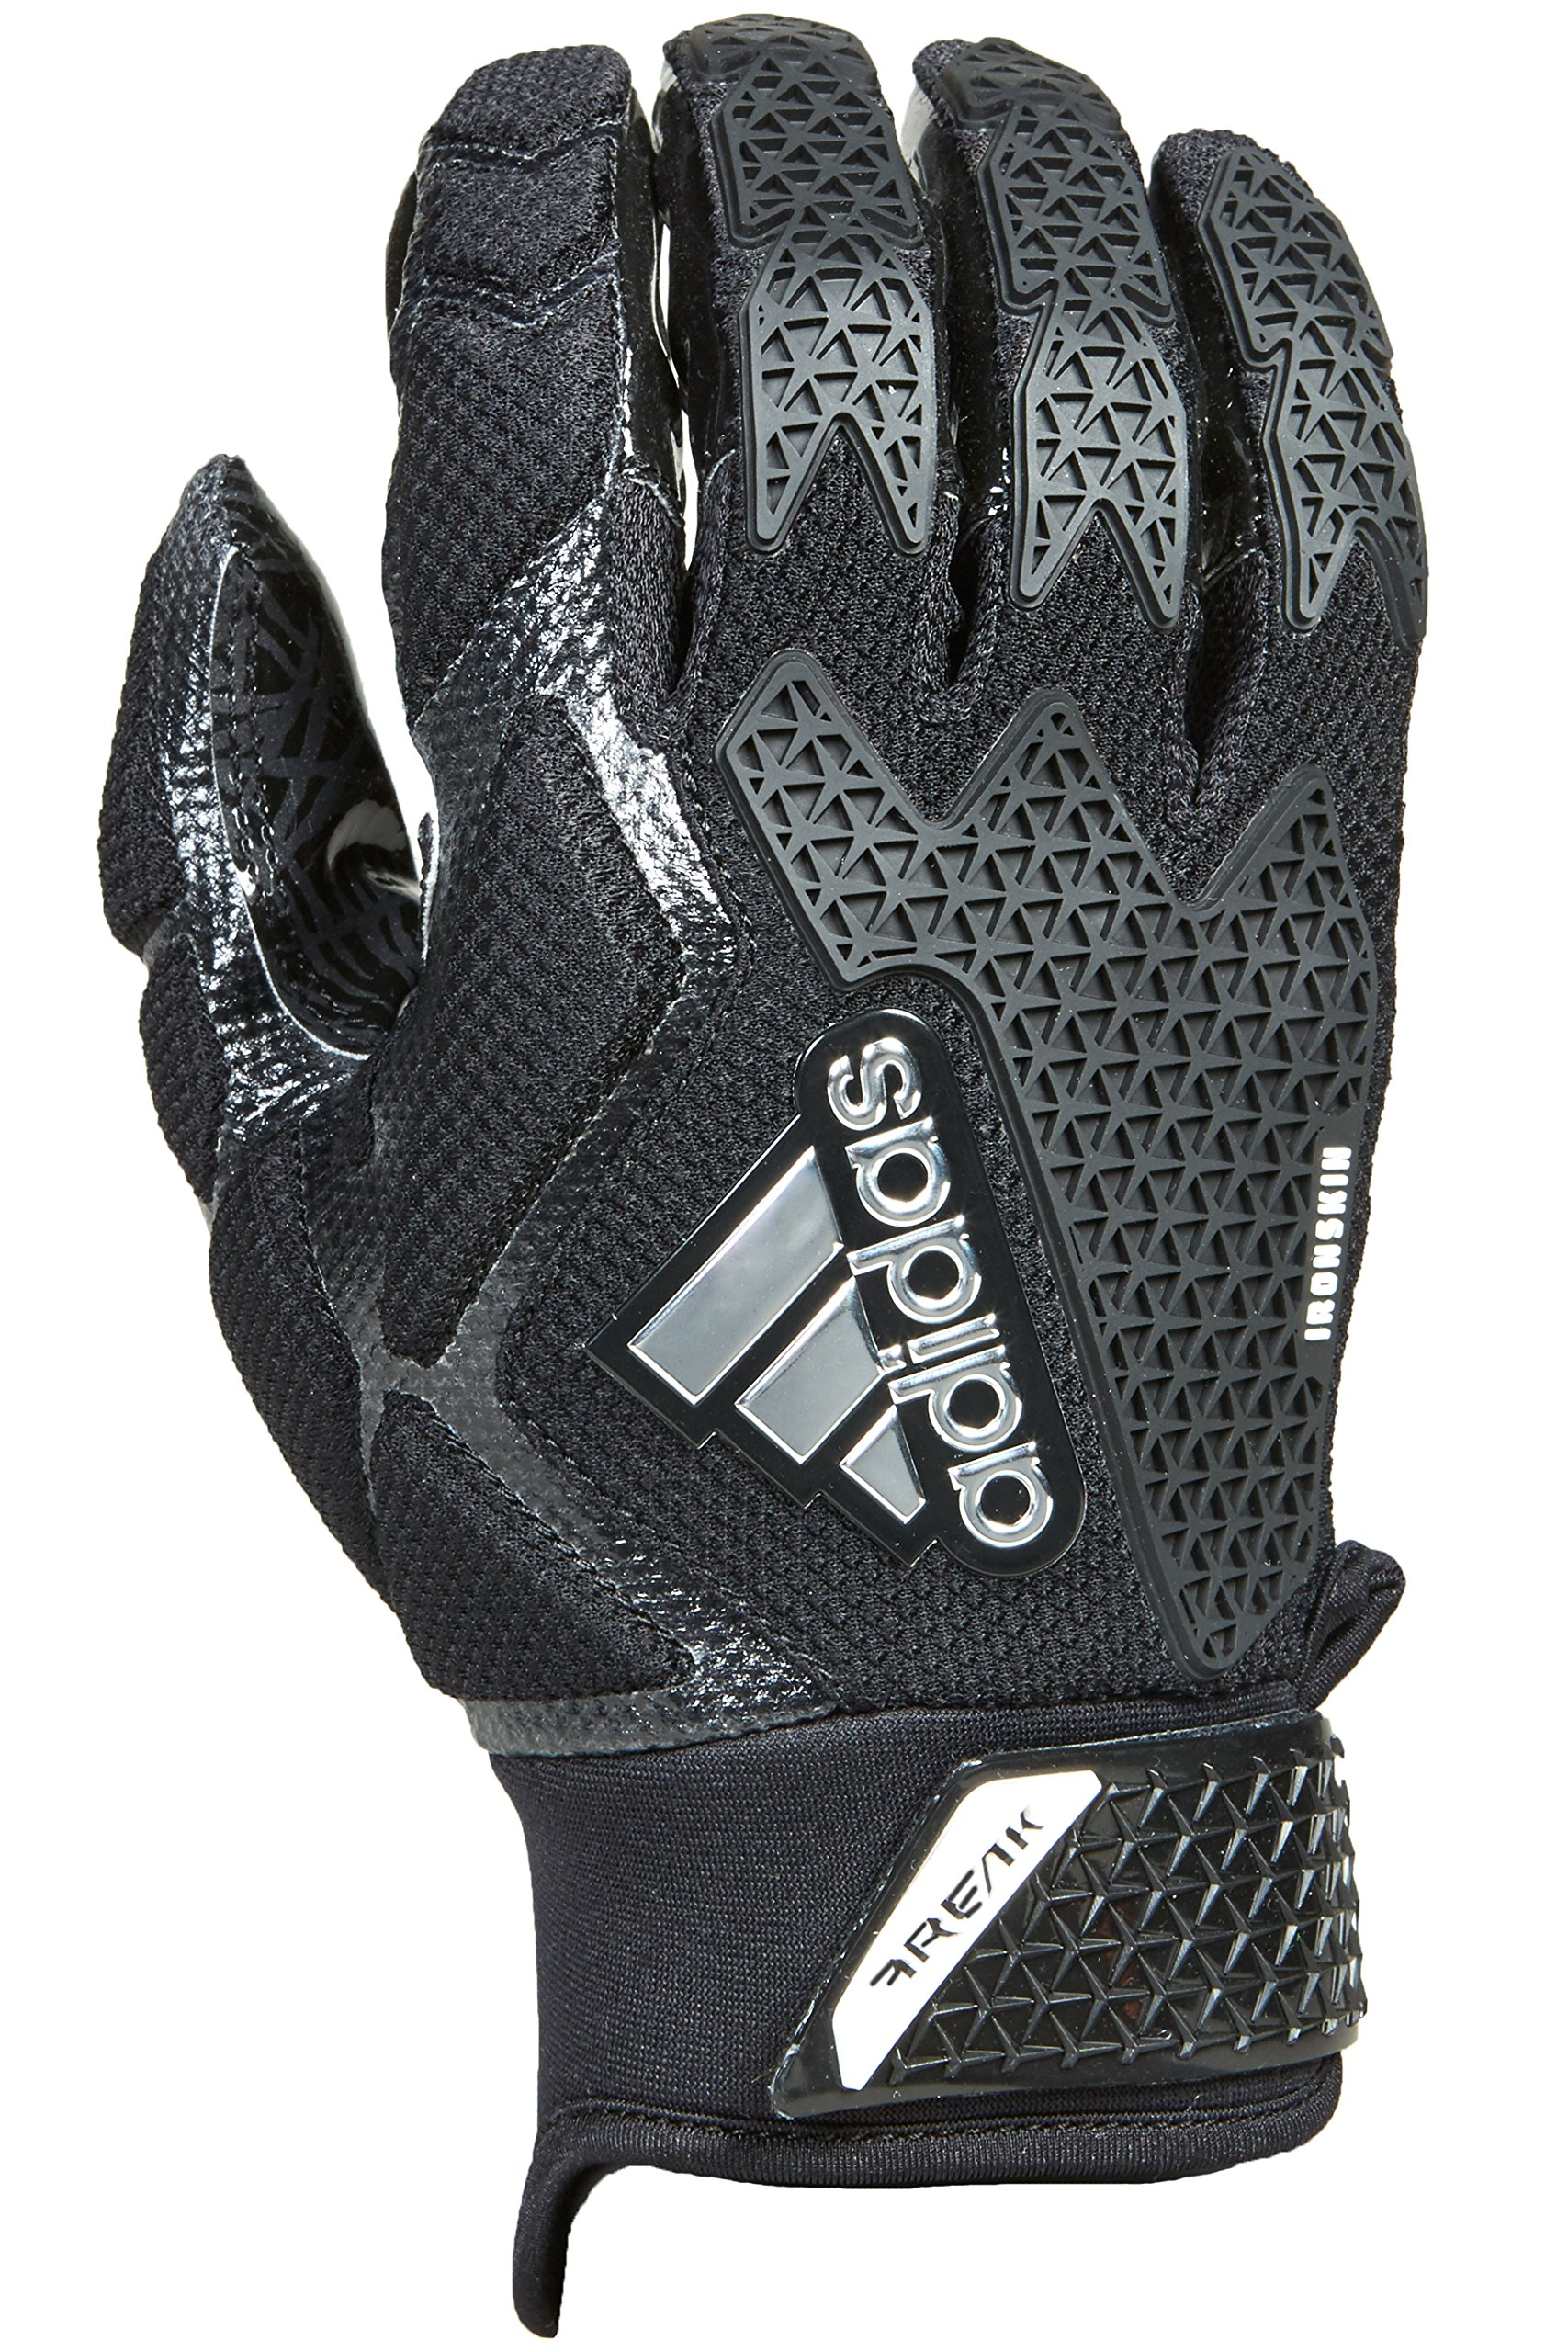 adidas Freak 3.0 Padded Receiver's Gloves, Black, 4X-Large